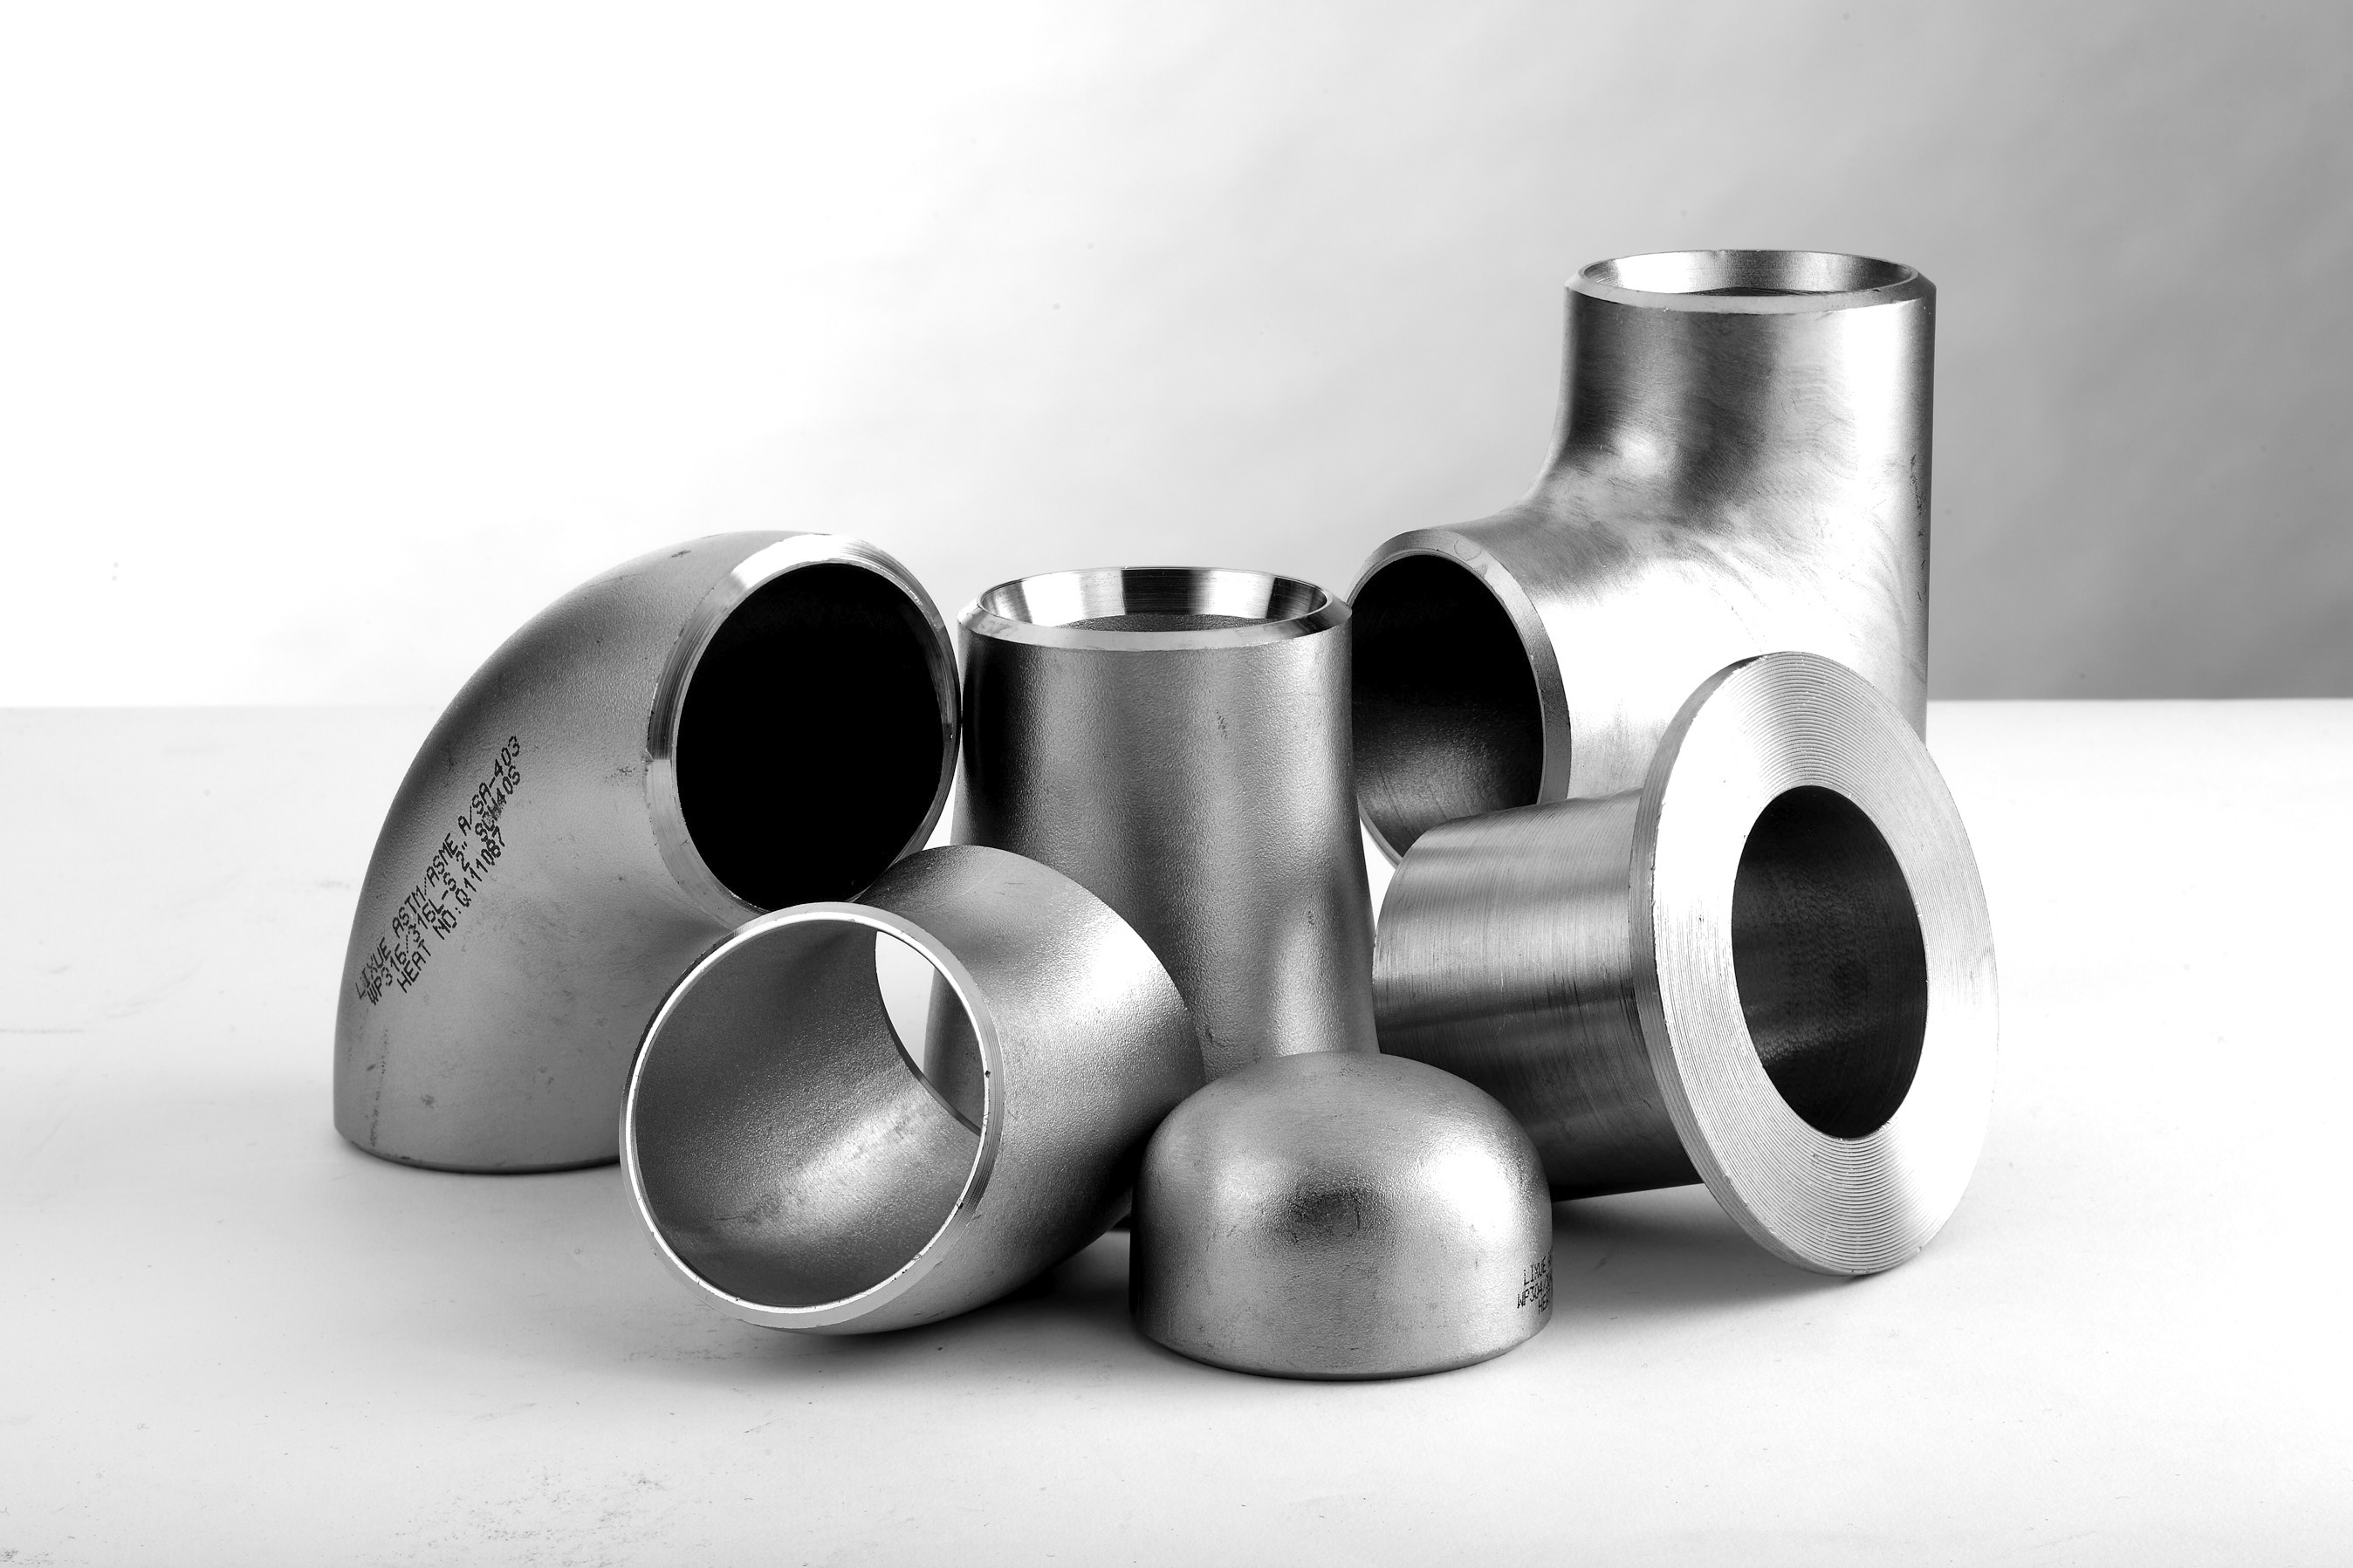 ASME B16.9 SMLS BUTT WELDING  FITTINGS